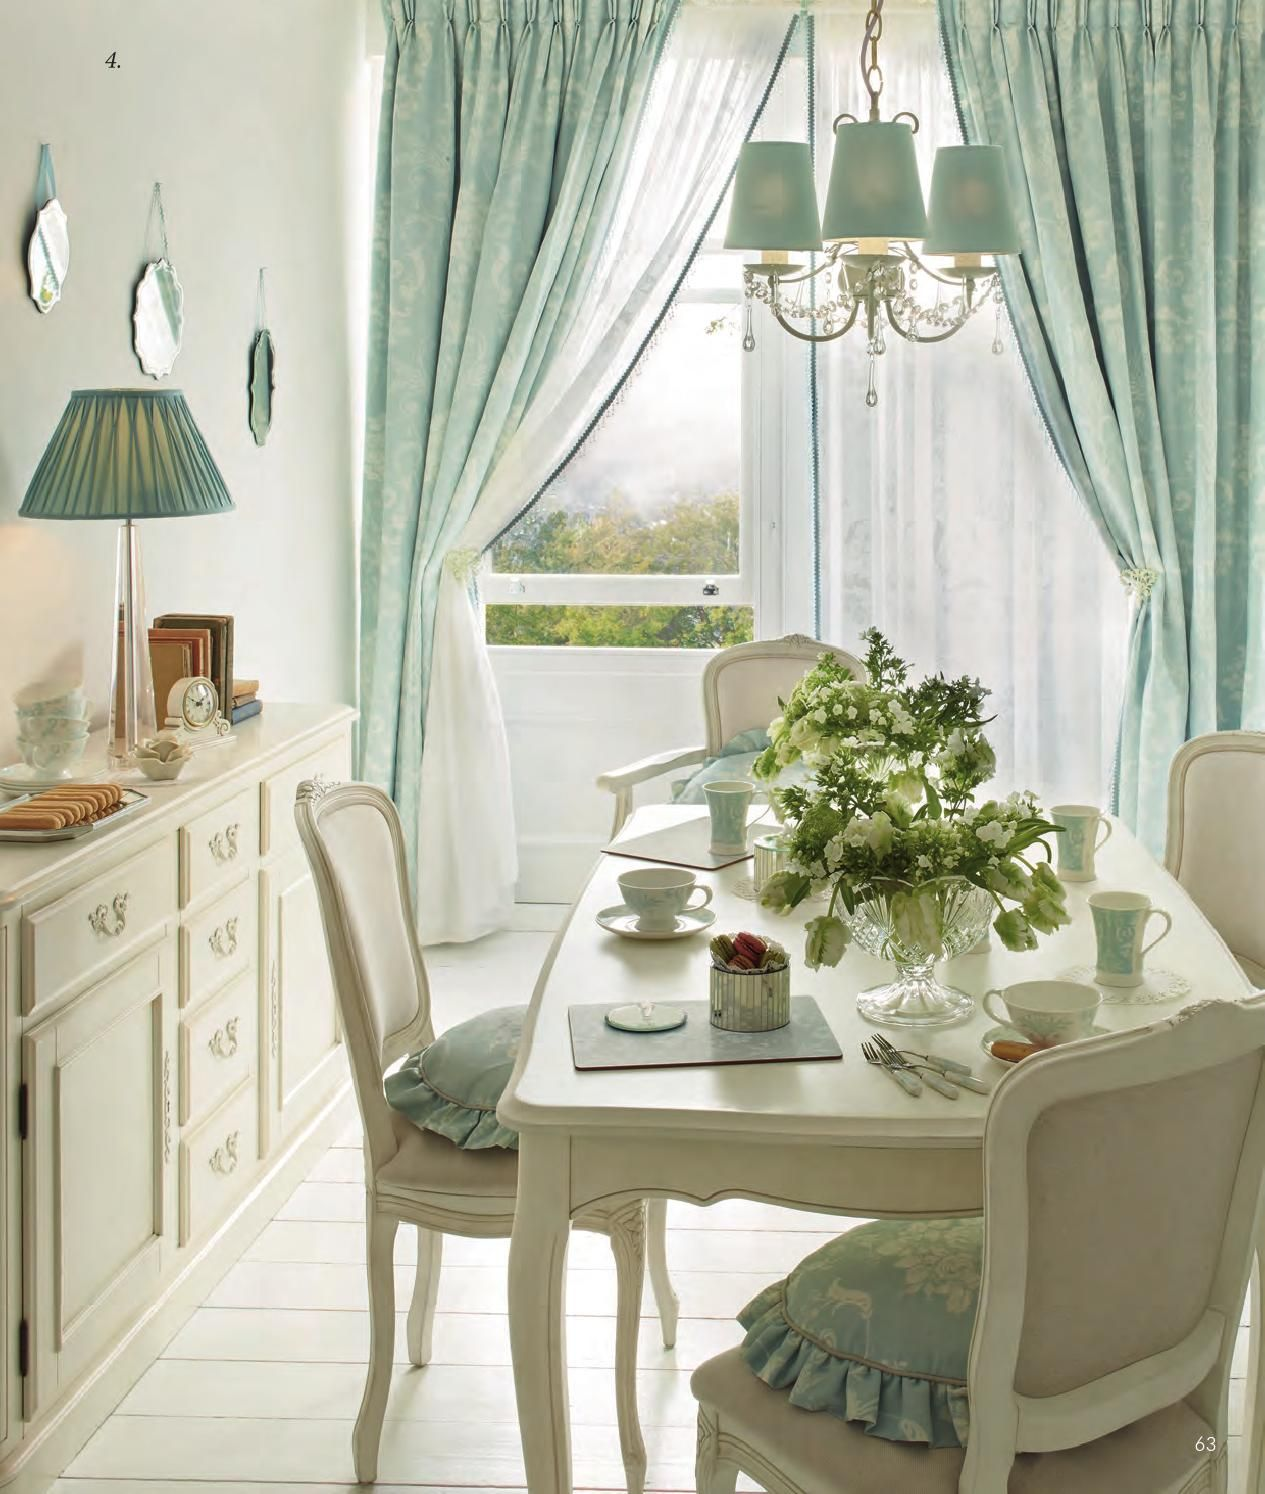 Laura ashley spring summer 2016 catalog comedores for Cortinas comedor 2016